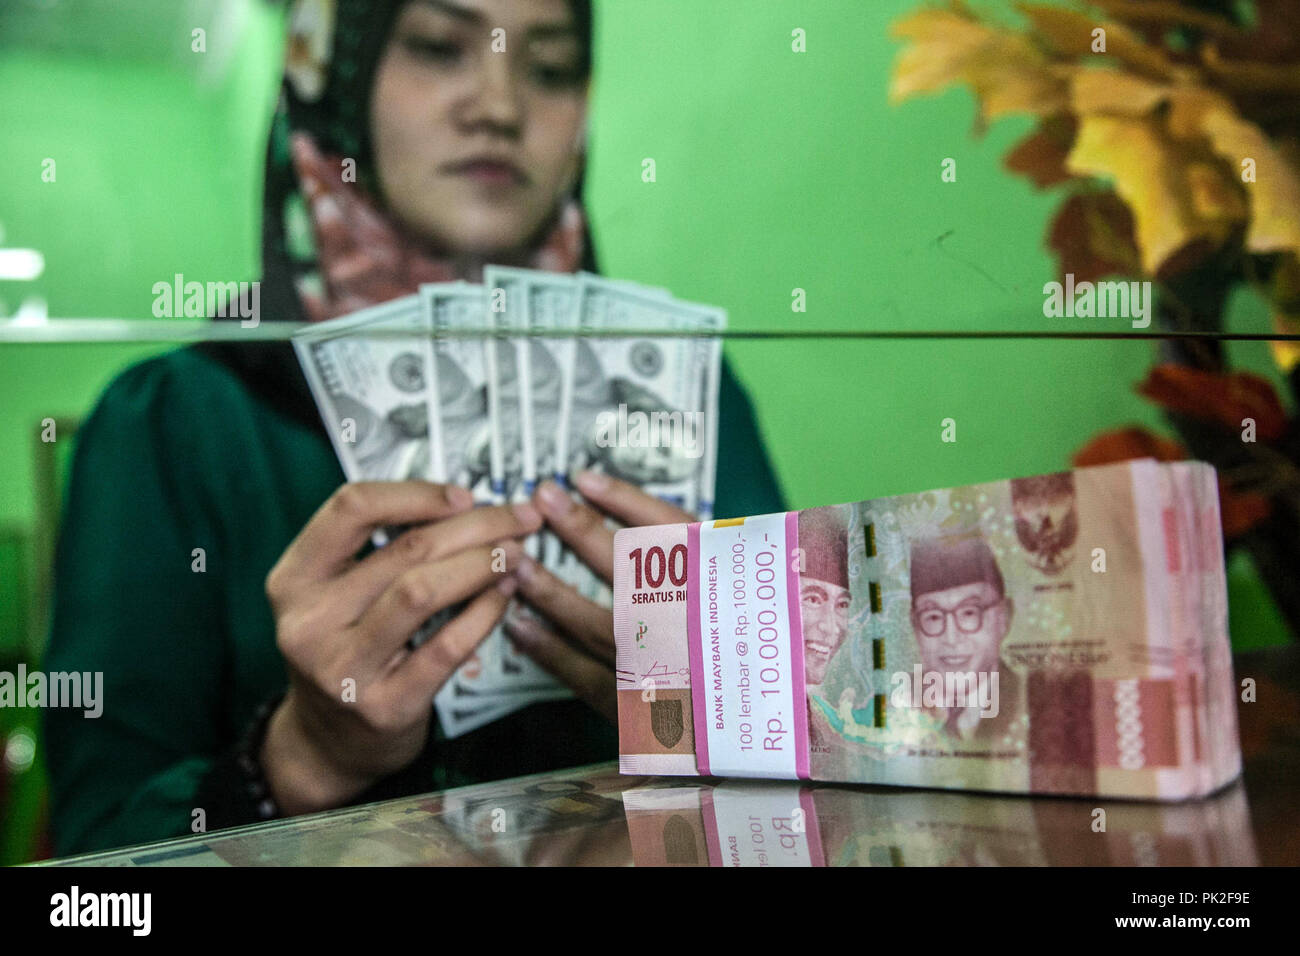 Medan, North Sumatra, Indonesia. 10th Sep, 2018. An employee counts U.S. one-hundred dollar banknotes as a bundle of Indonesian 100,000 rupiah banknotes sits on a counter at a currency exchange store in Medan on Sept 10, 2018, Indonesia. As Aug. 15's policy decision approaches, Bank Indonesia finds itself under pressure to raise the benchmark rate again even after increasing it by a combined 100 basis points since mid-May to stem a slide in the currency, where estimates that the Rupiah exchange rate will stabilize in the range of 14,835 rupiah per US dollar on today. (Credit Image: © Iv Stock Photo